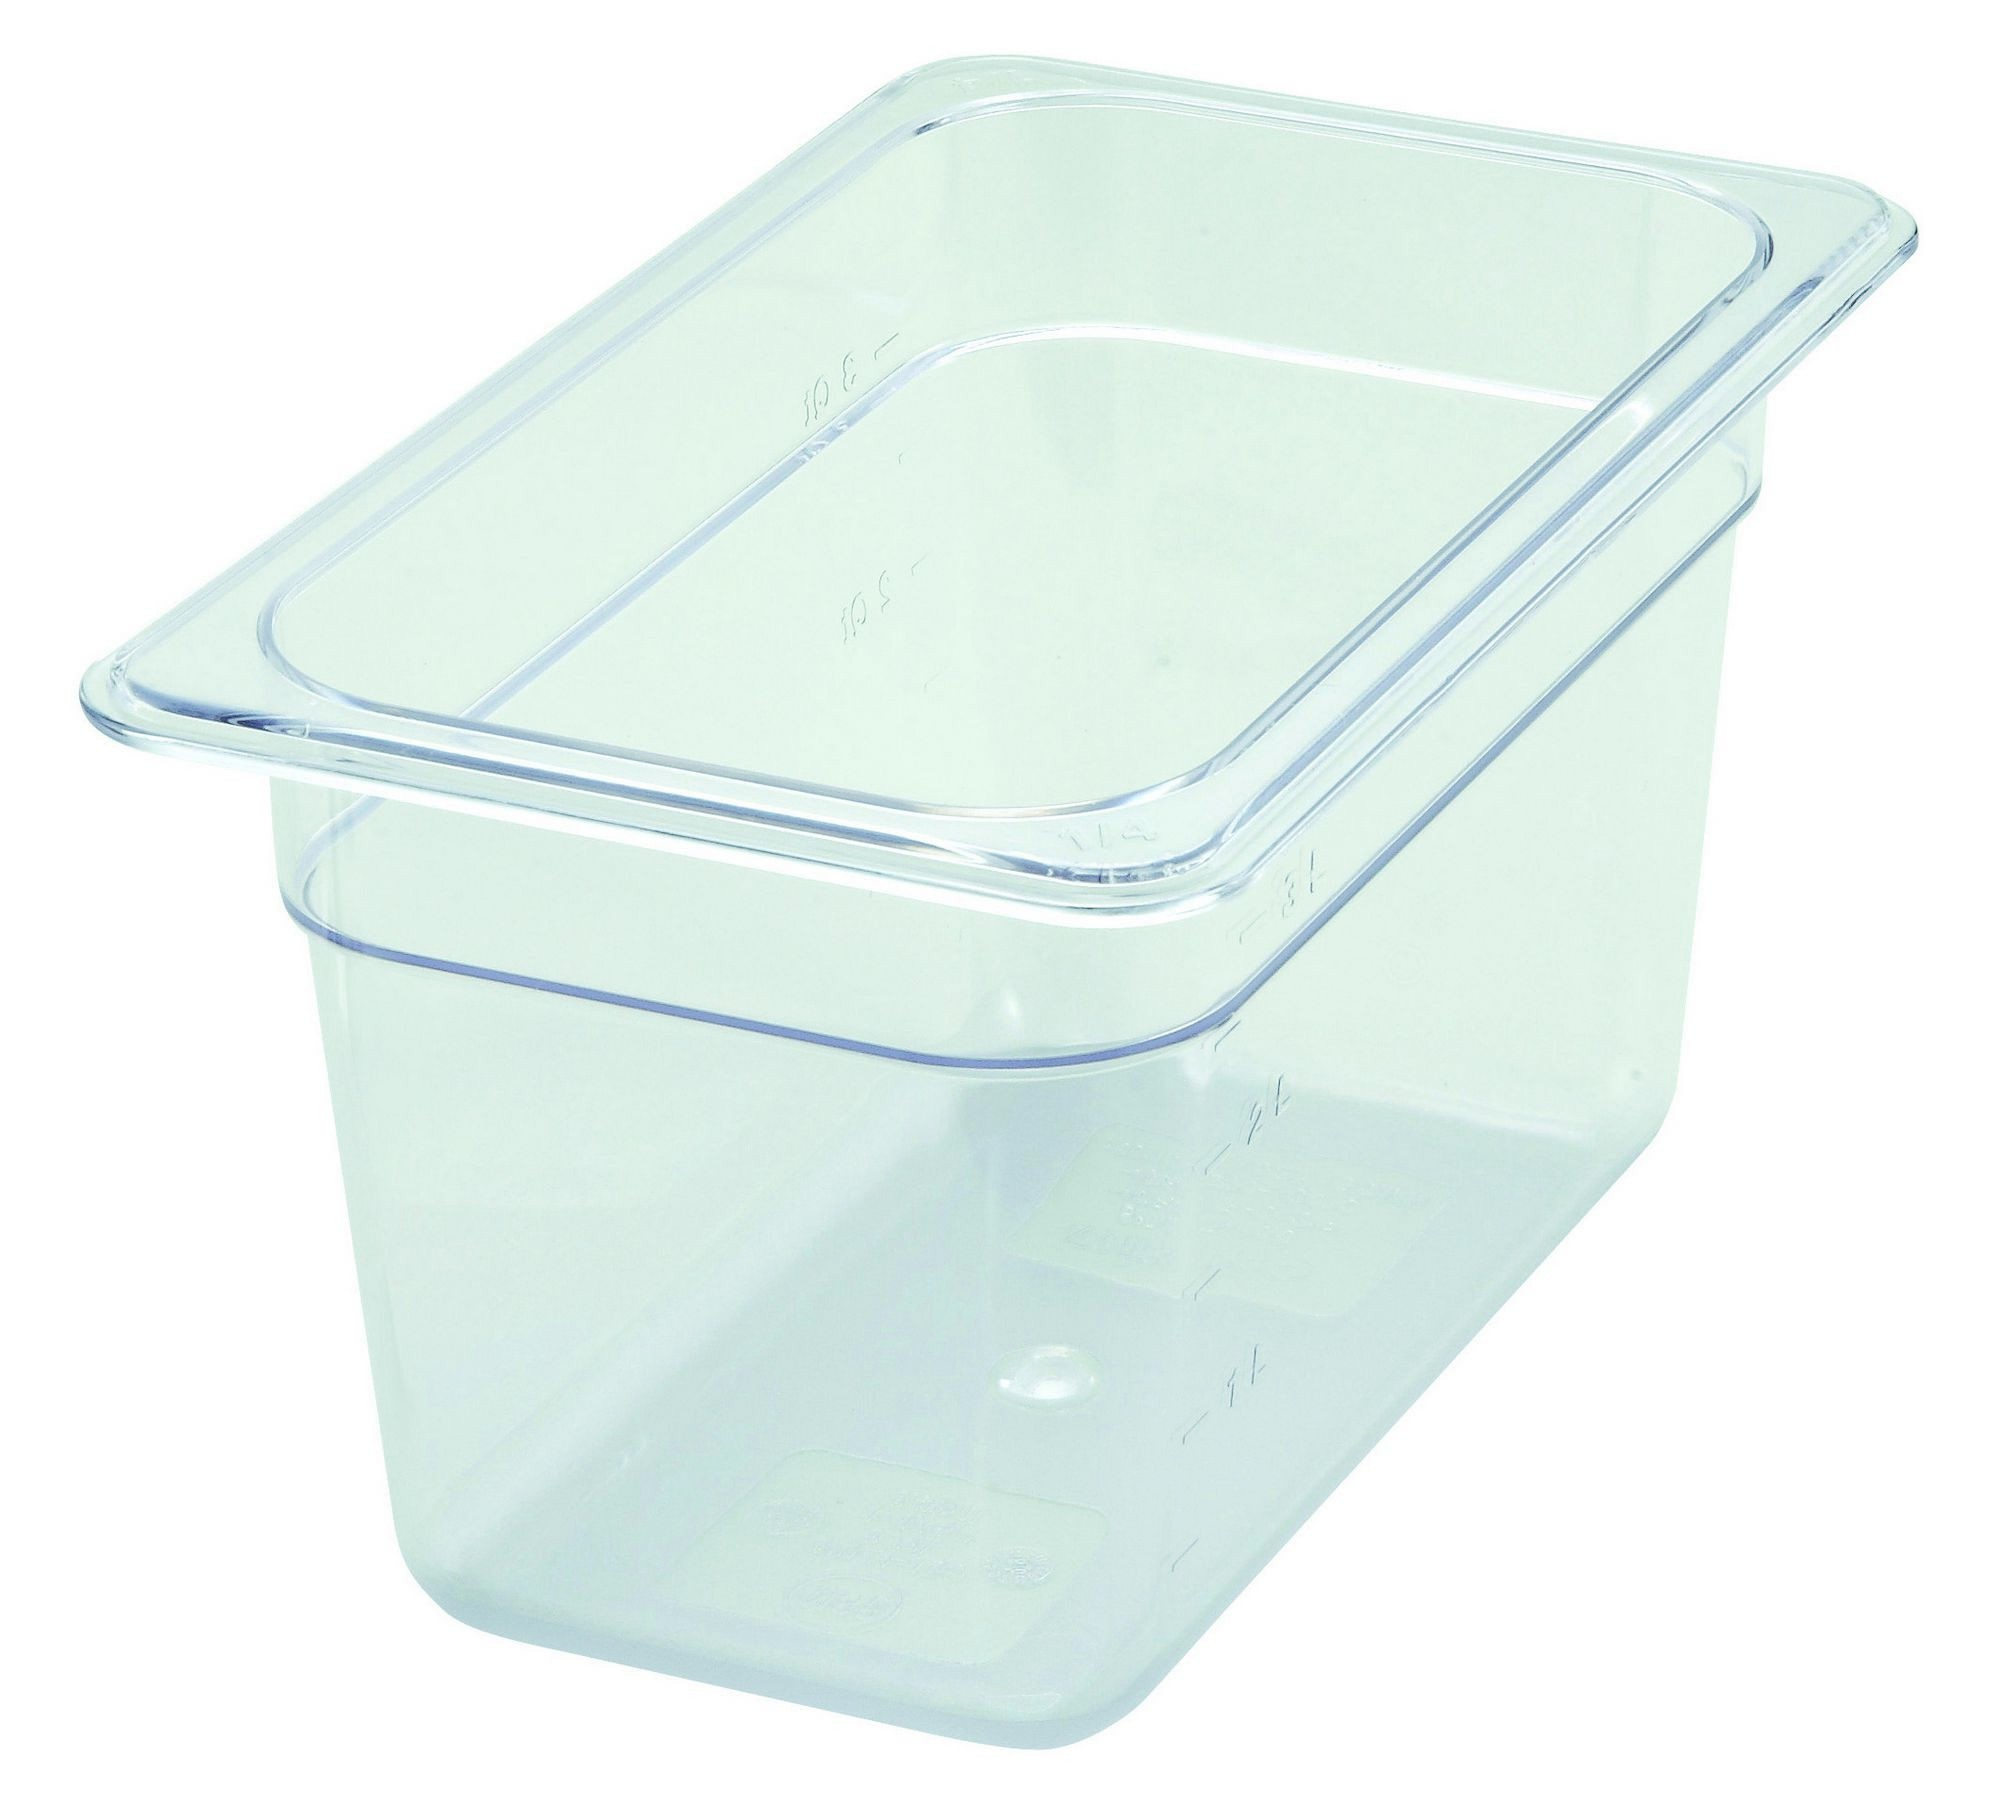 Polycarbonate NSF One-Fourth Size Food Pan - 6 Deep